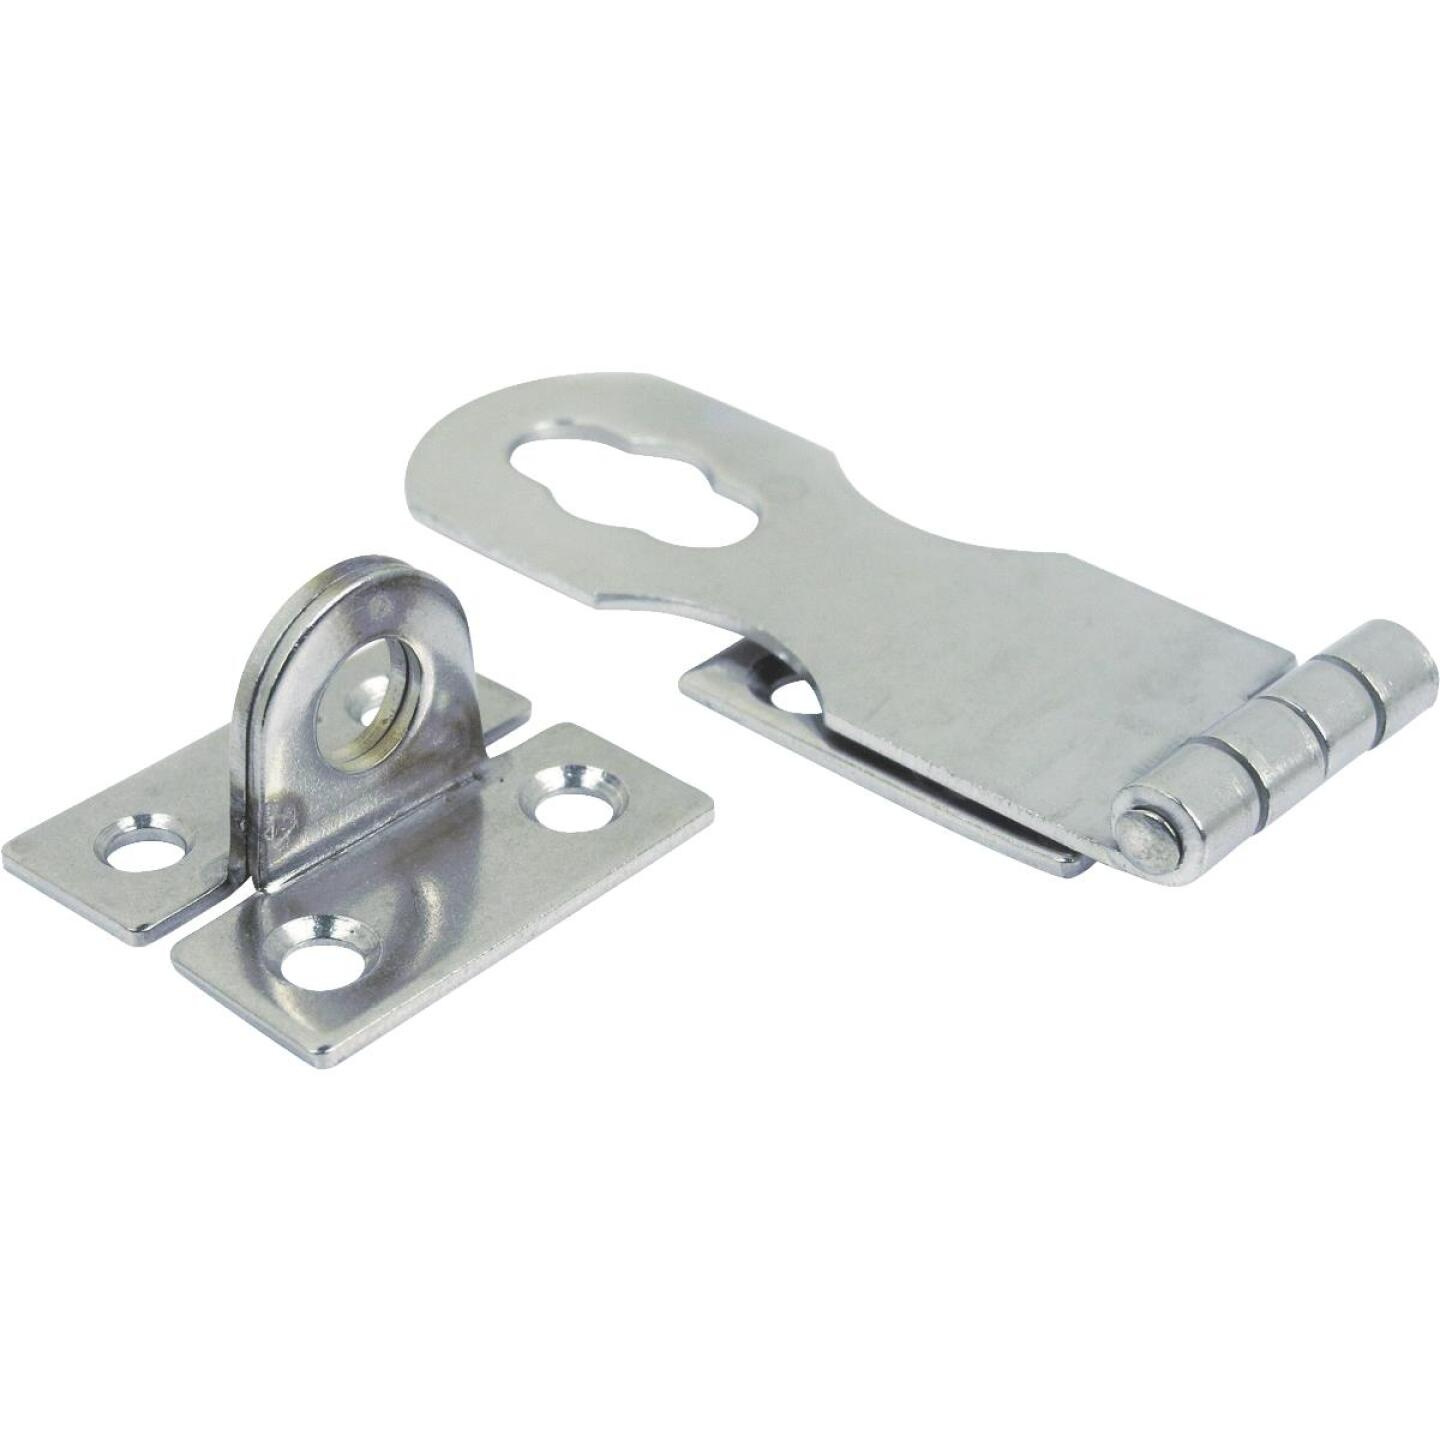 Seachoice 1 In. x 2-7/8 In. Chrome-Plated Stainless Steel Safety Hasp Image 1